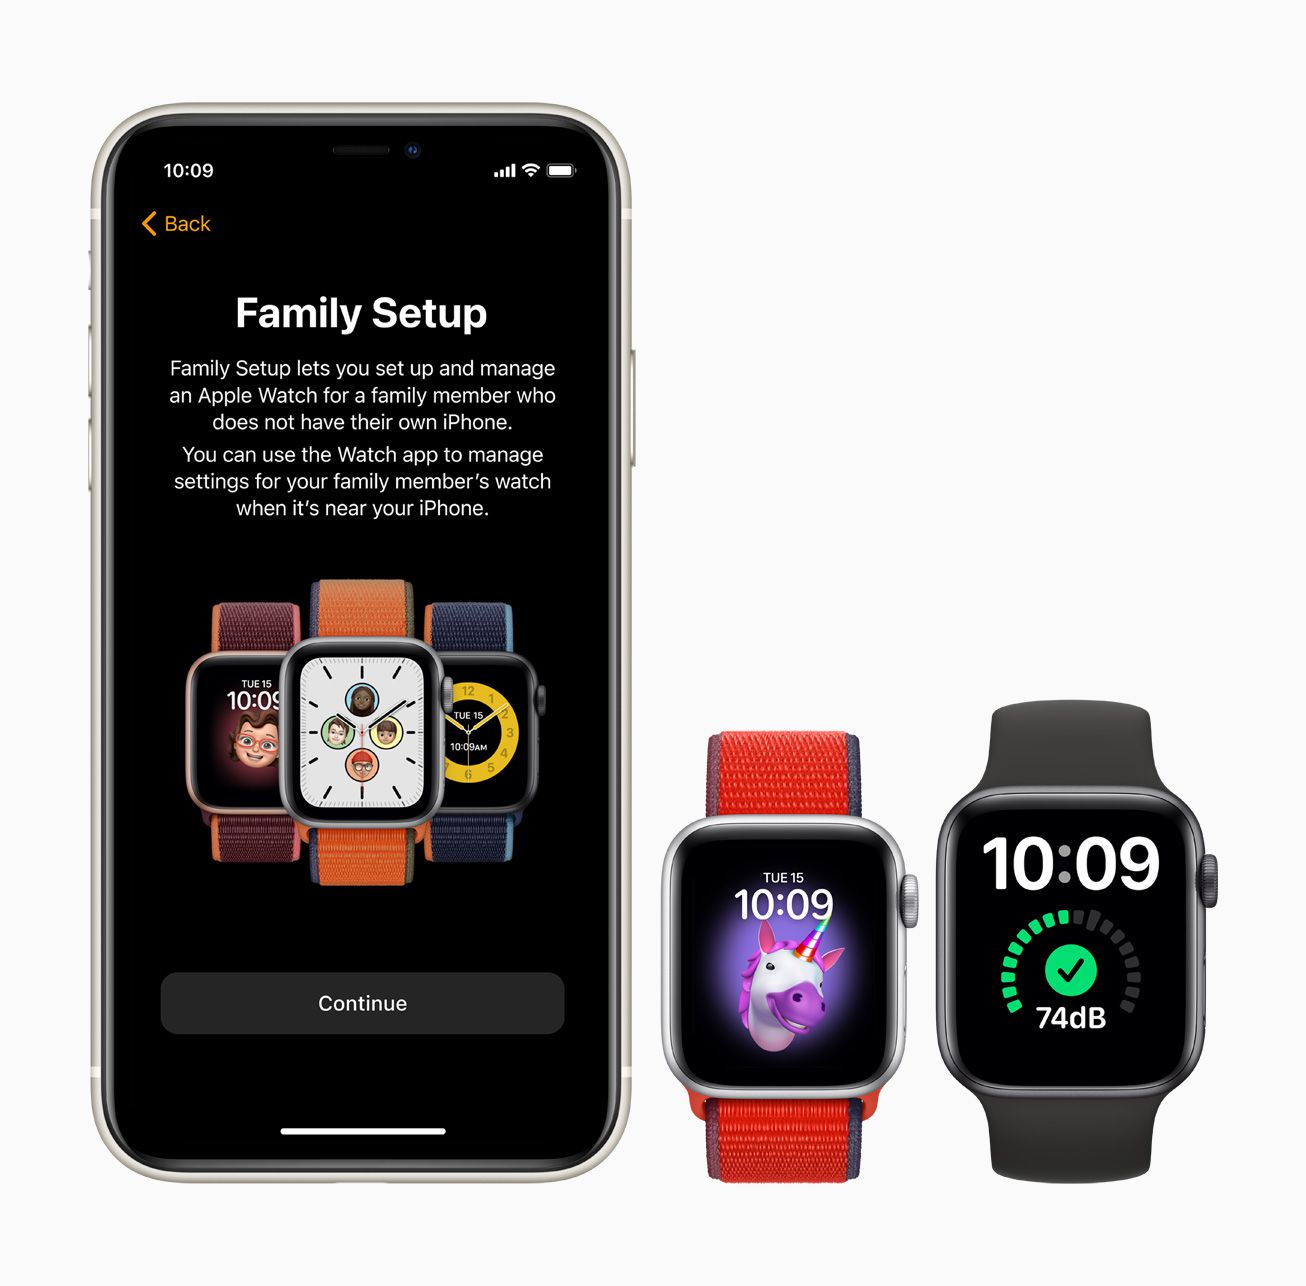 Two Apple Watches and an iPhone using Family Setup feature.